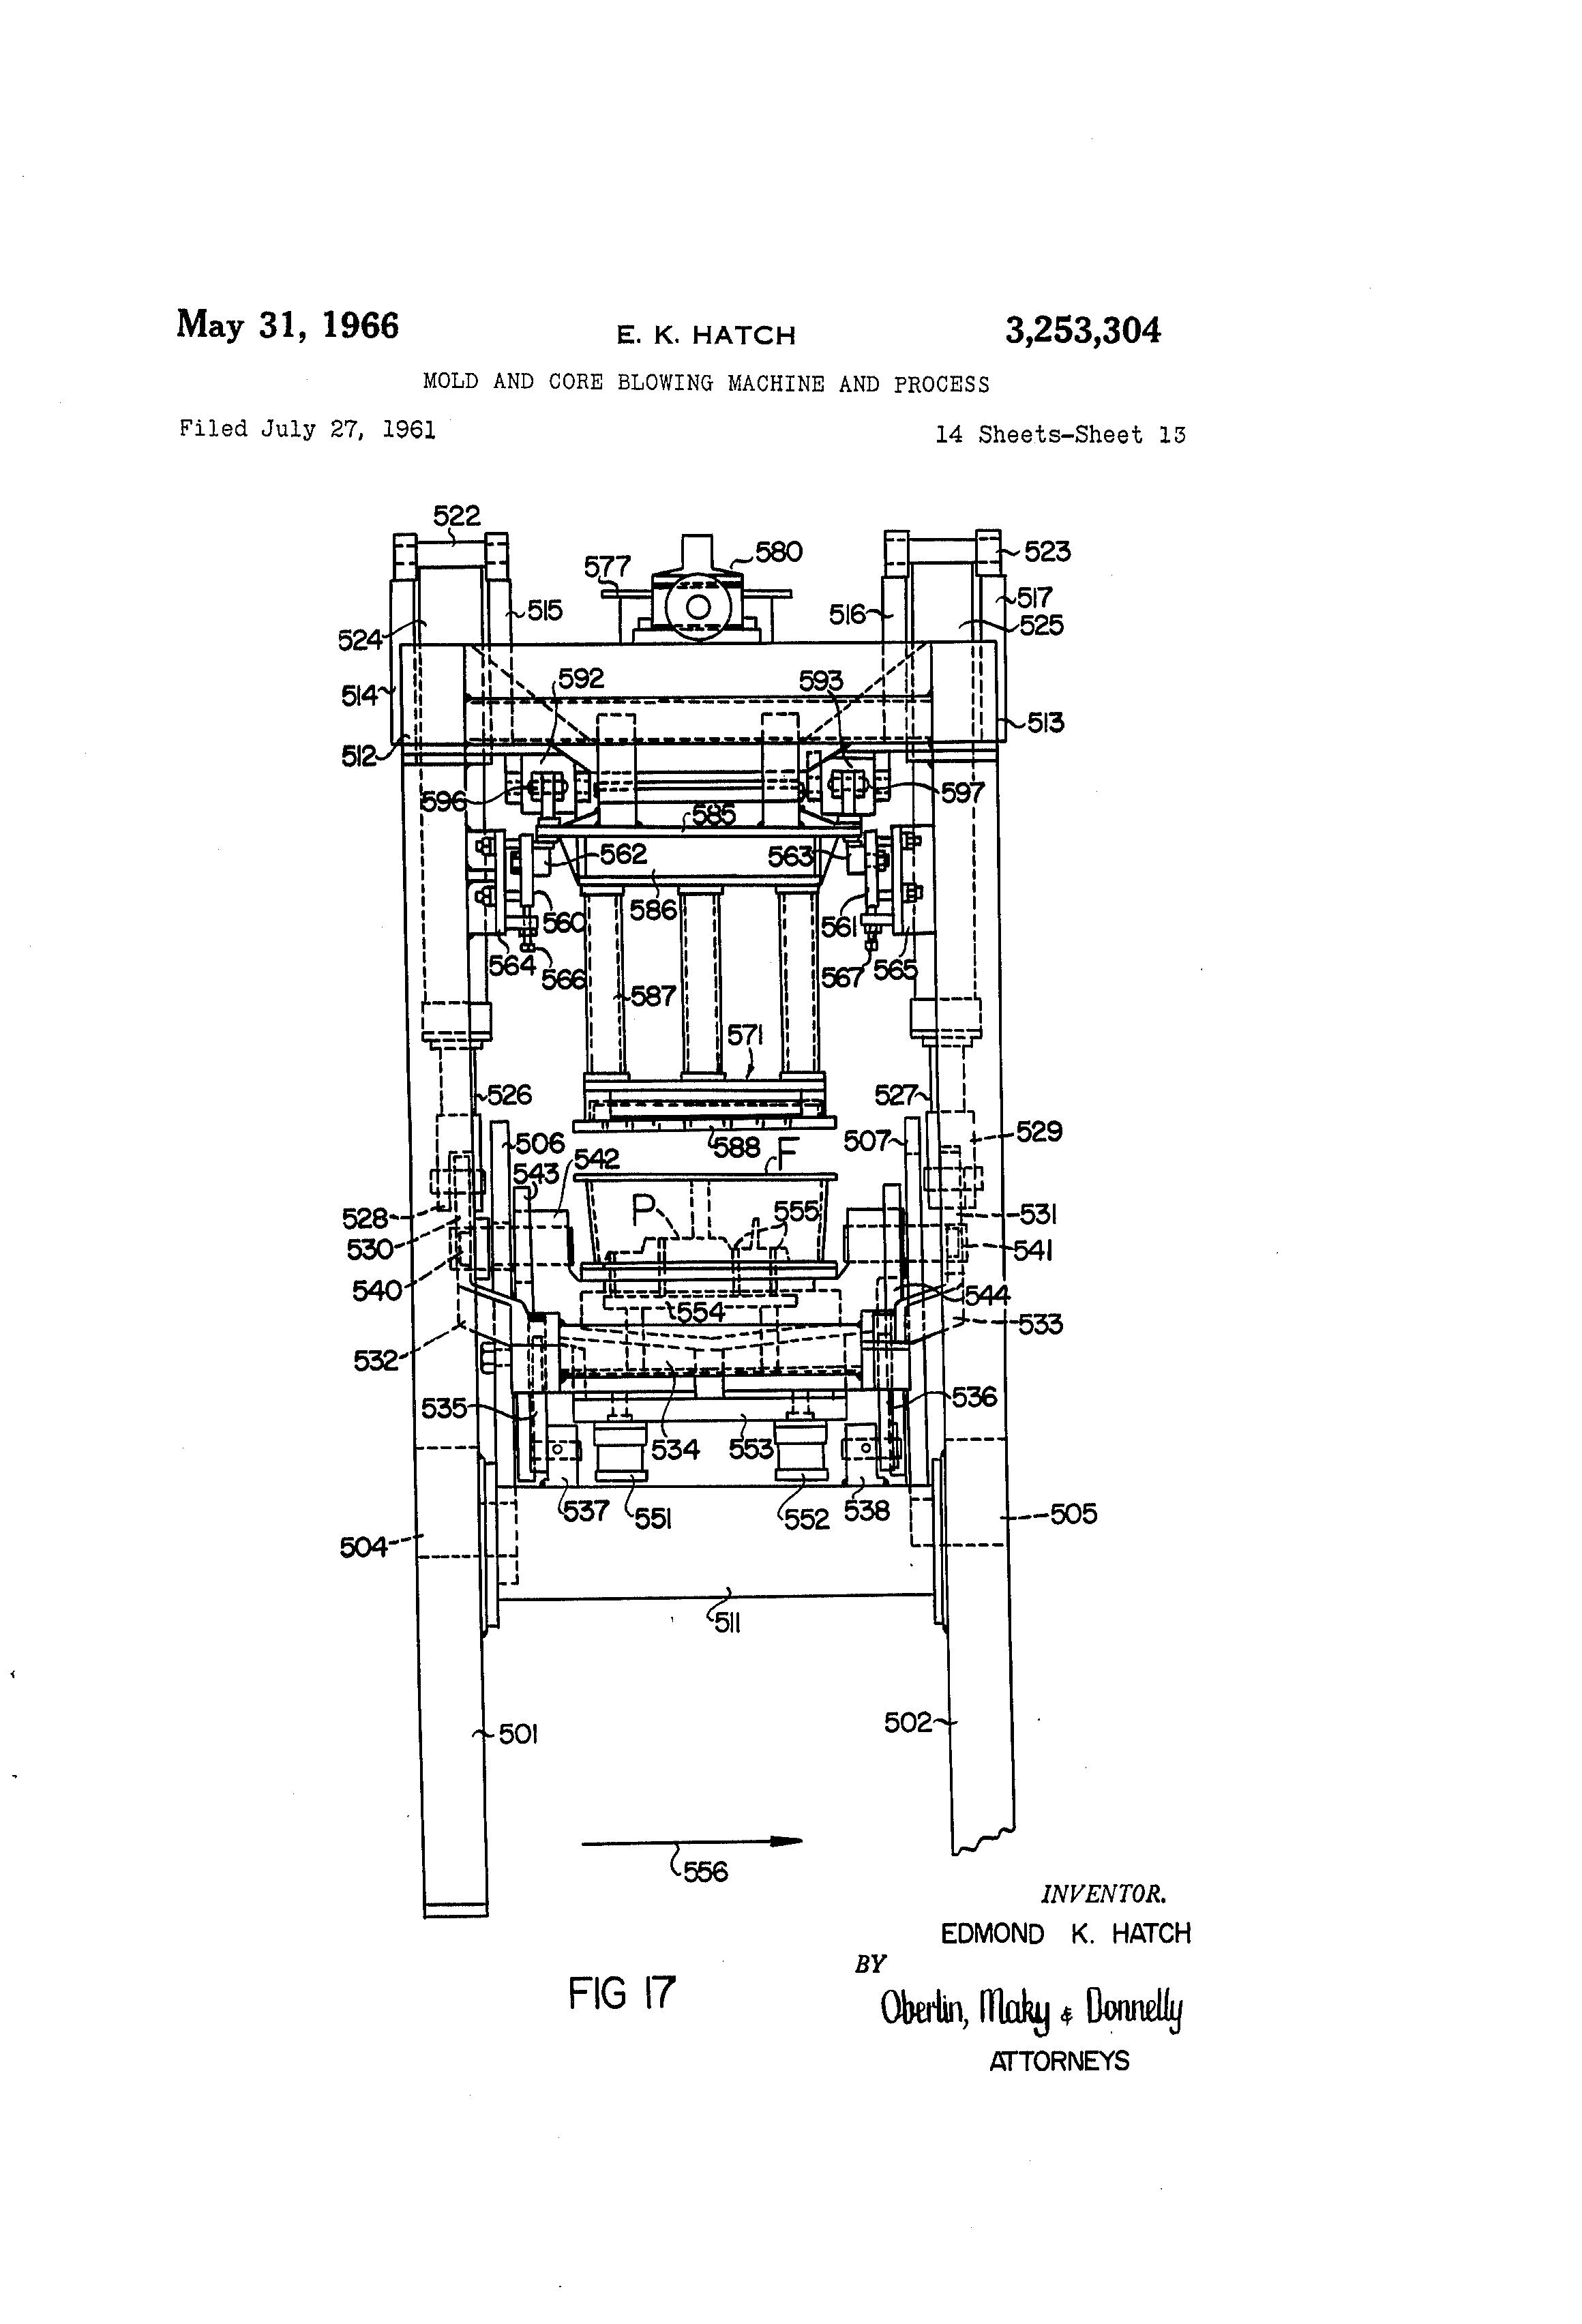 US3253304 12 patent us3253304 mold and core blowing machine and process  at love-stories.co